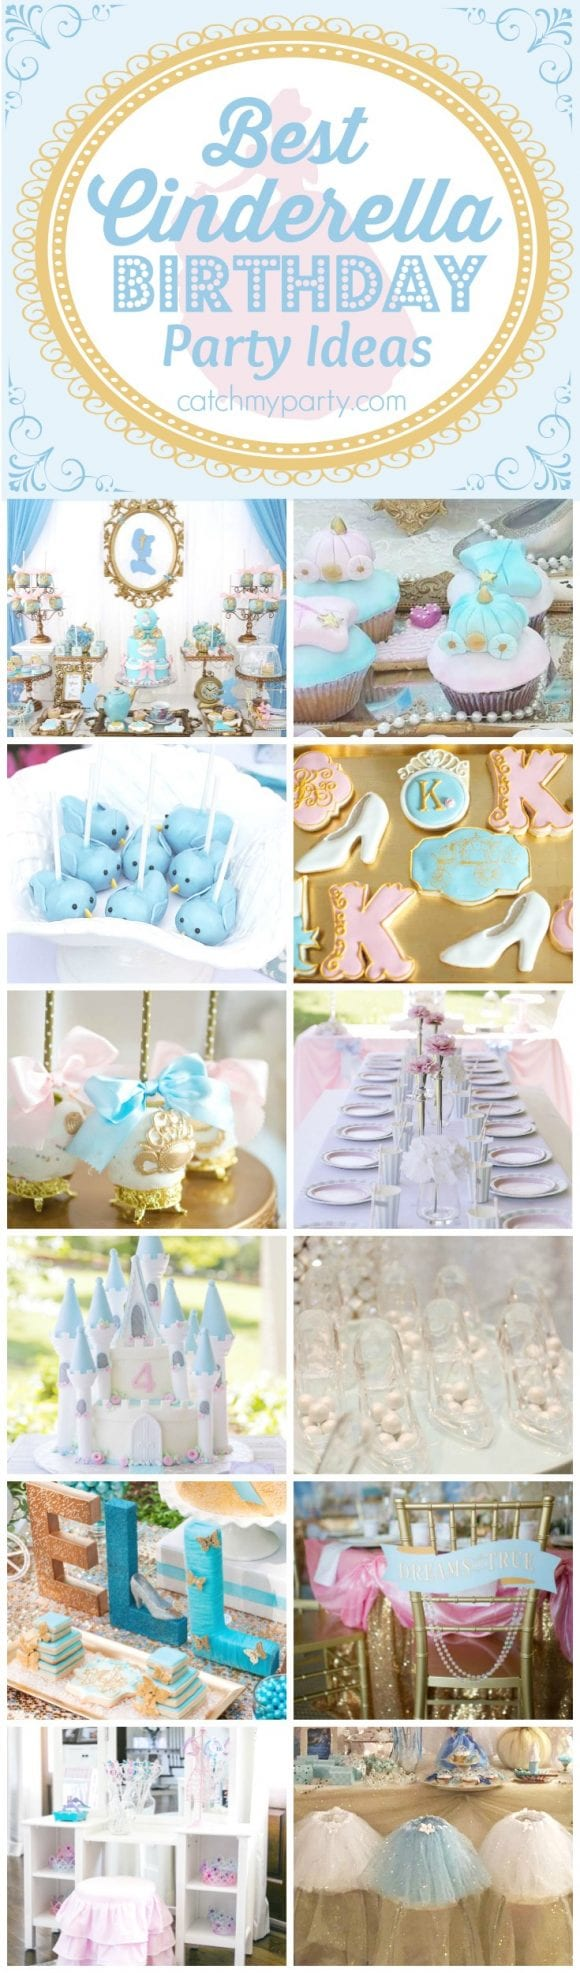 Best Cinderella Birthday Party Ideas | CatchMyparty.com